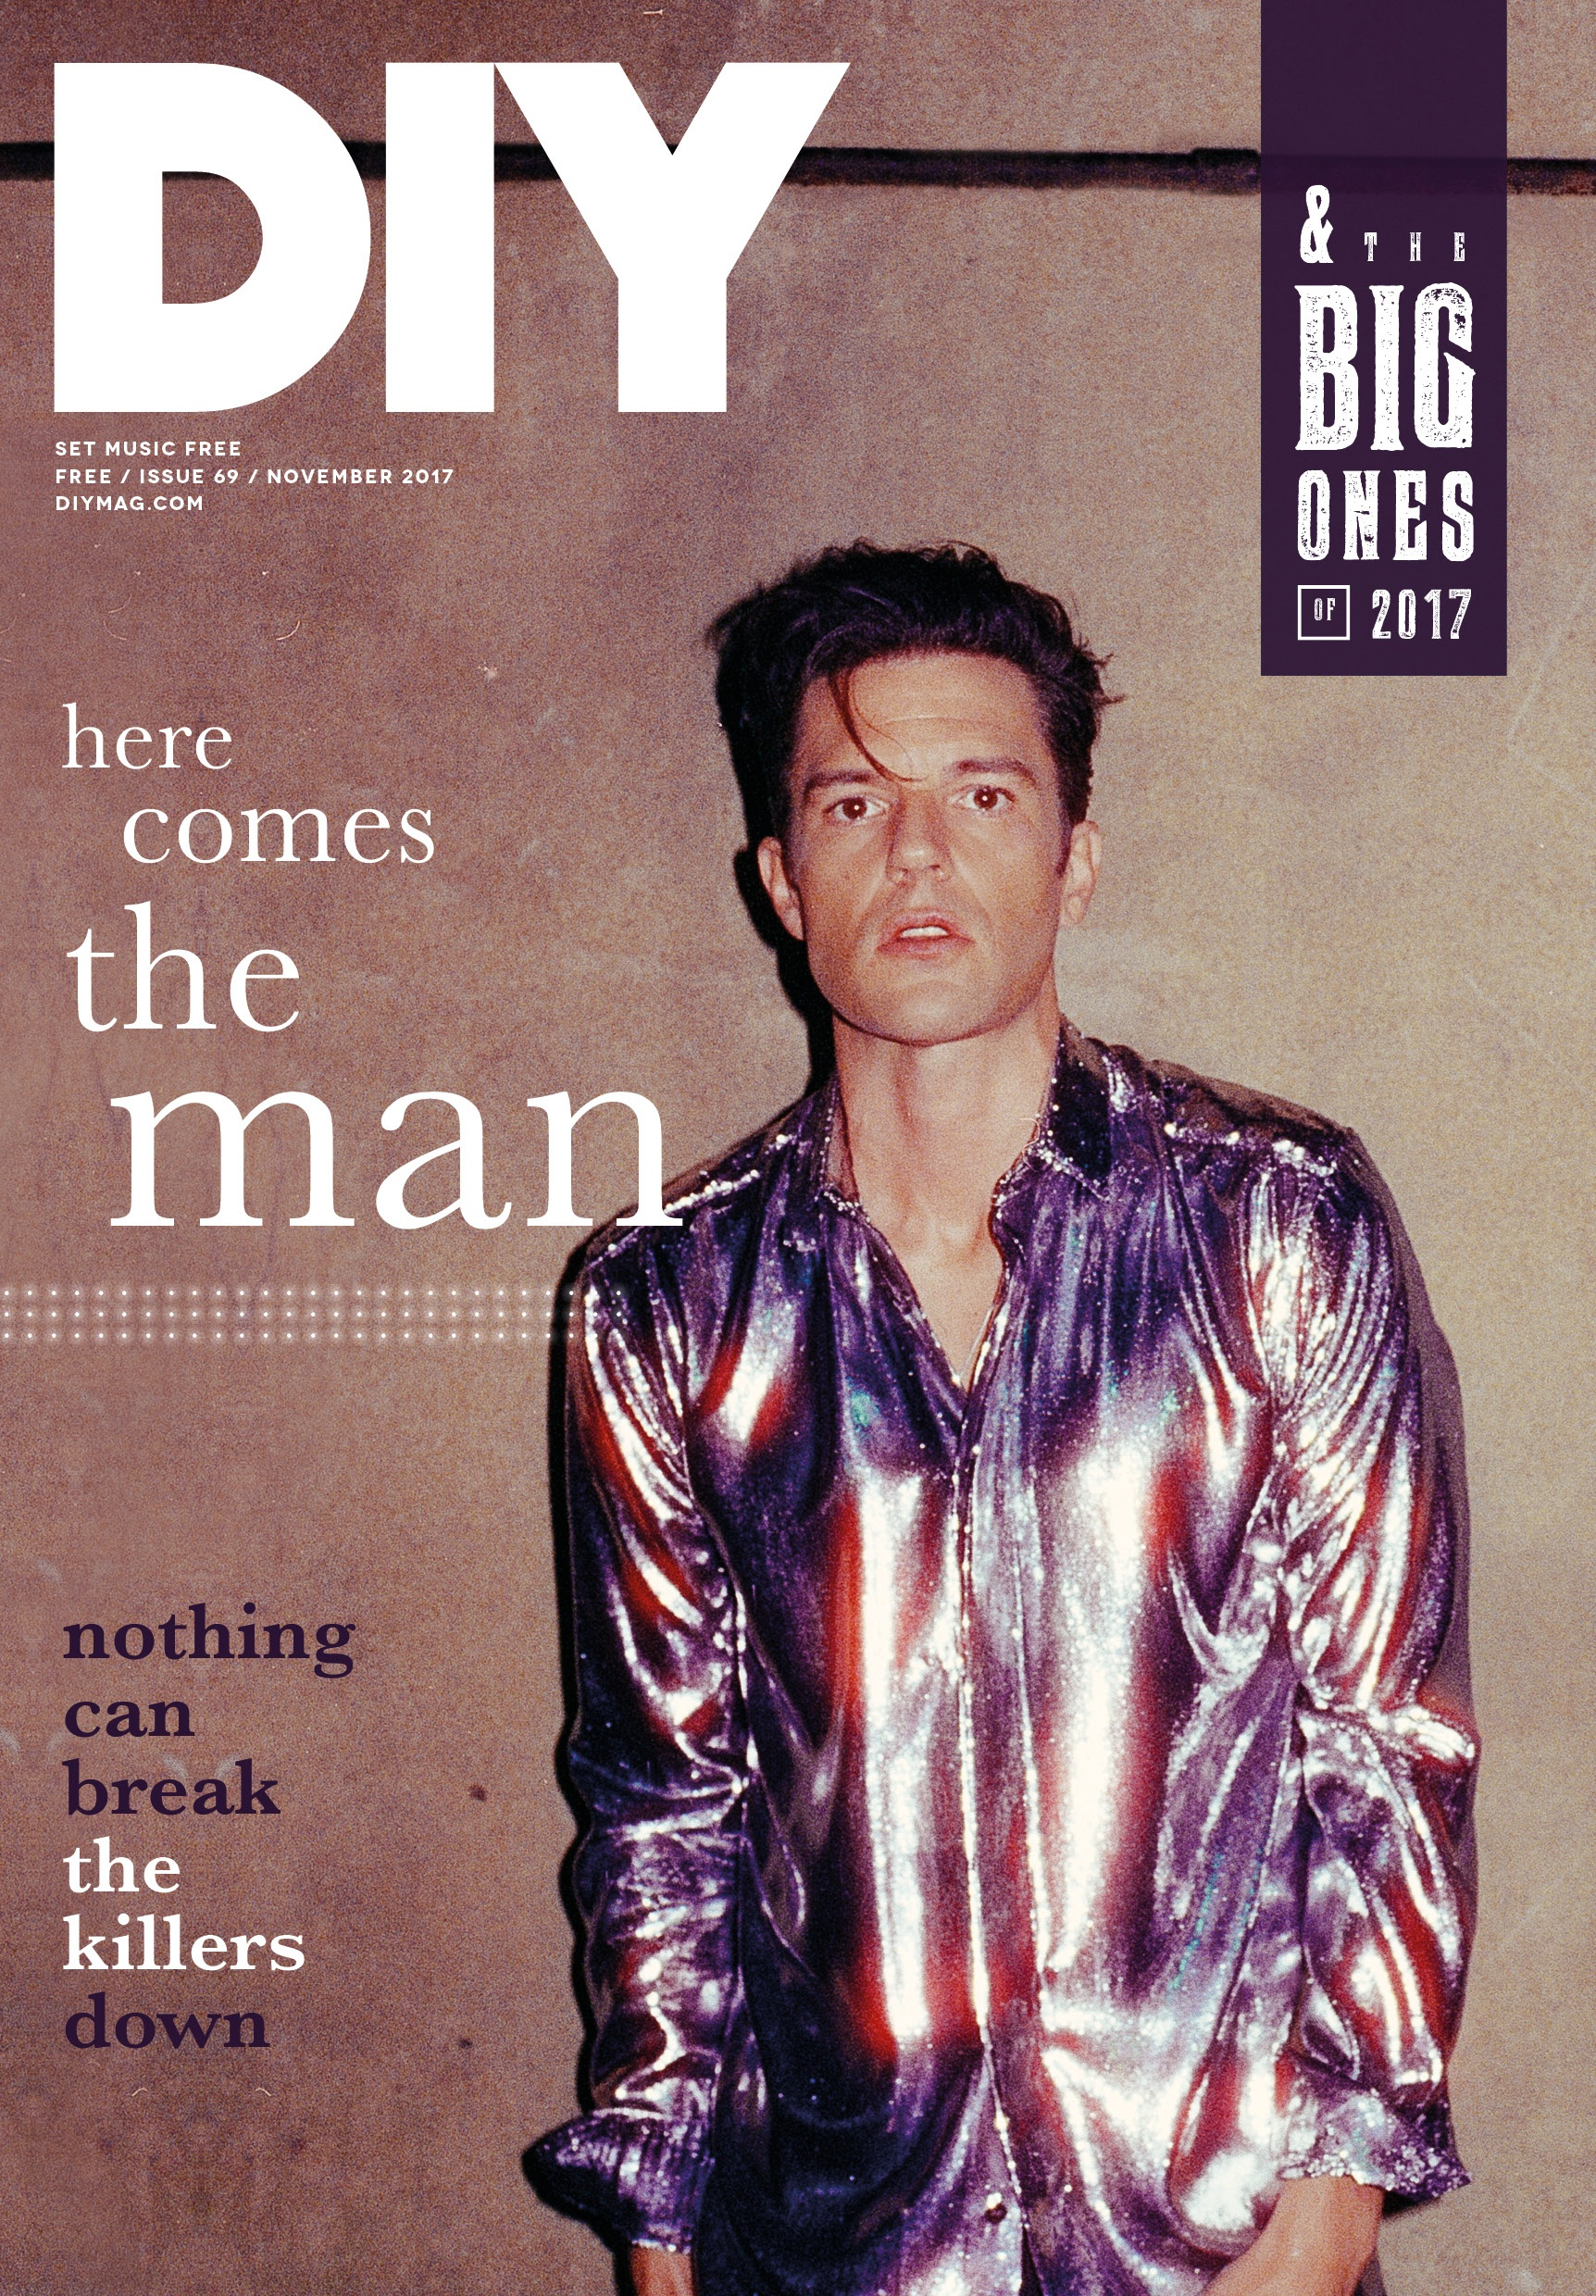 Here comes the man… The Killers are on the cover of the new issue of DIY!